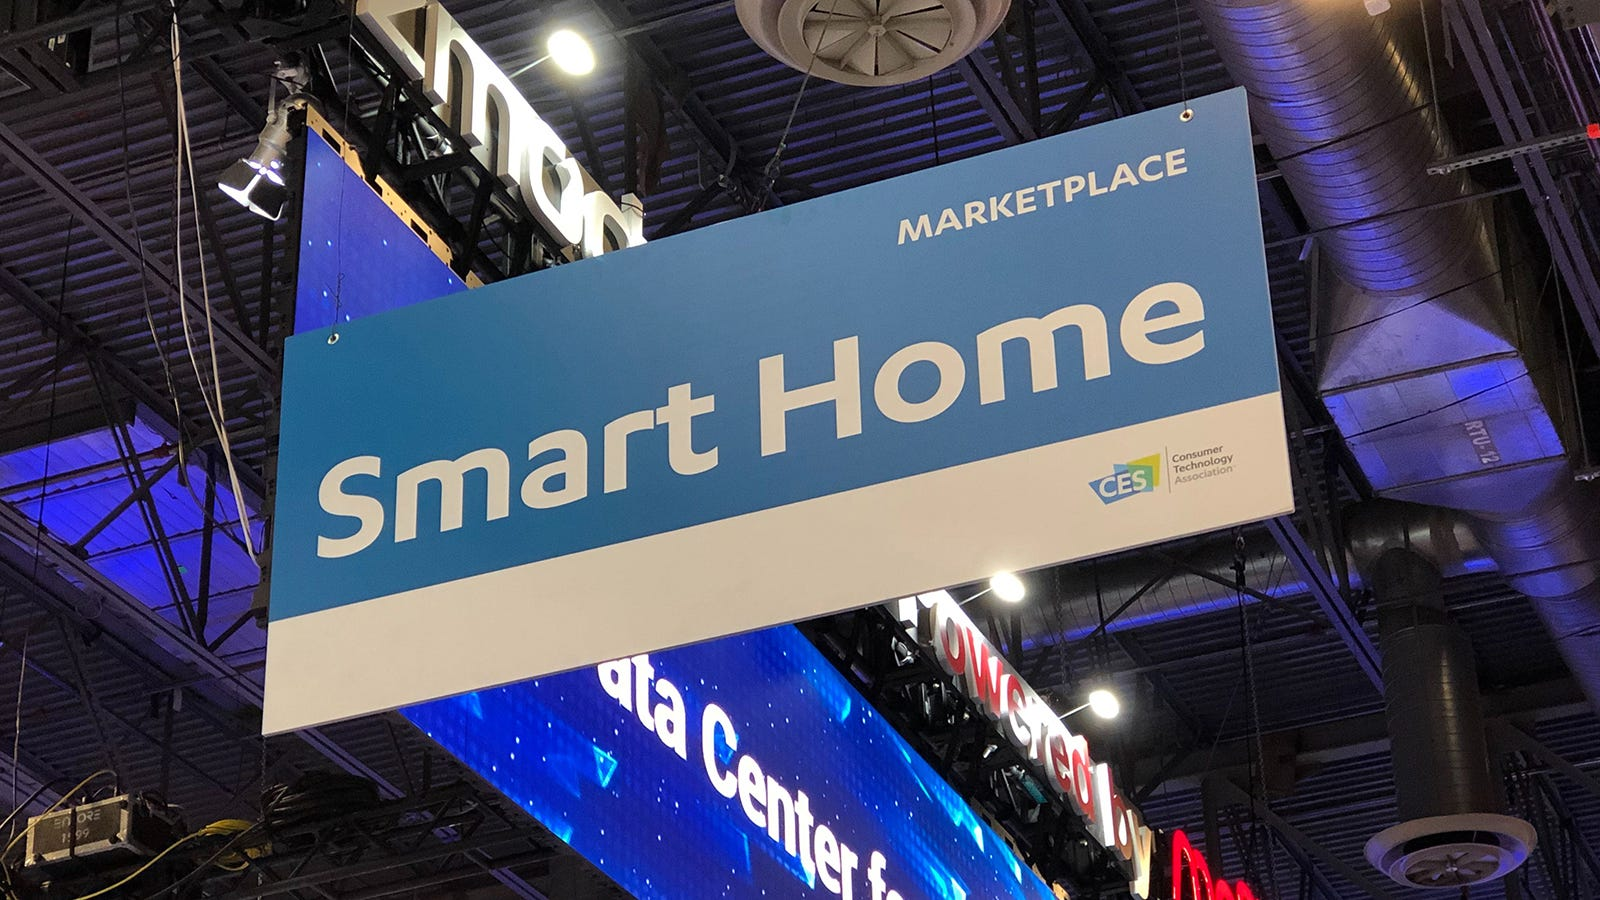 The Best Smarthome Products We Saw at CES 2019